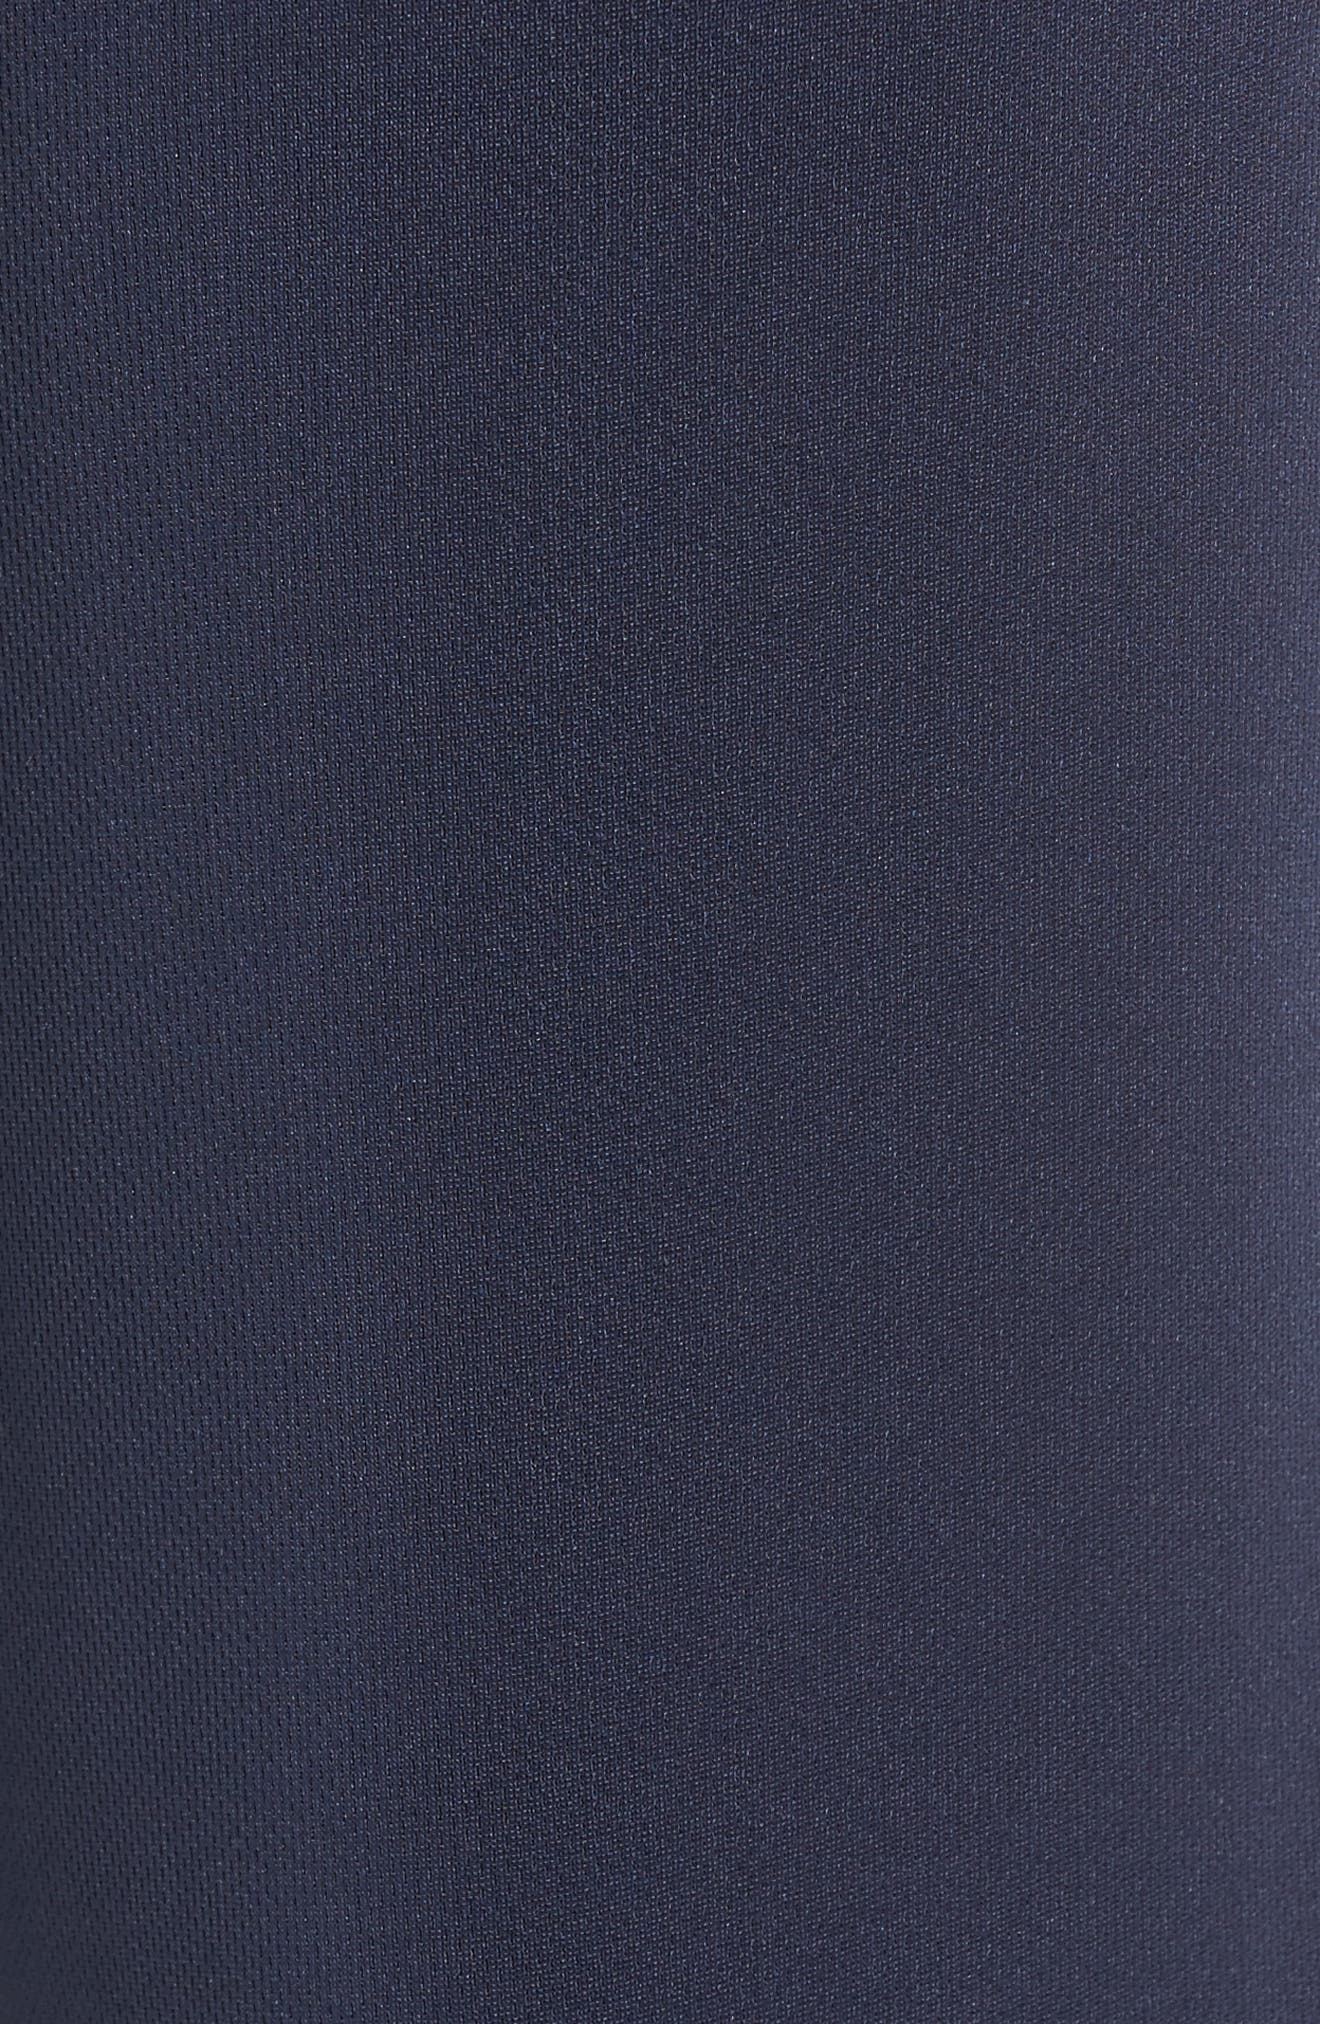 Work Out Lounge Pants,                             Alternate thumbnail 5, color,                             Navy